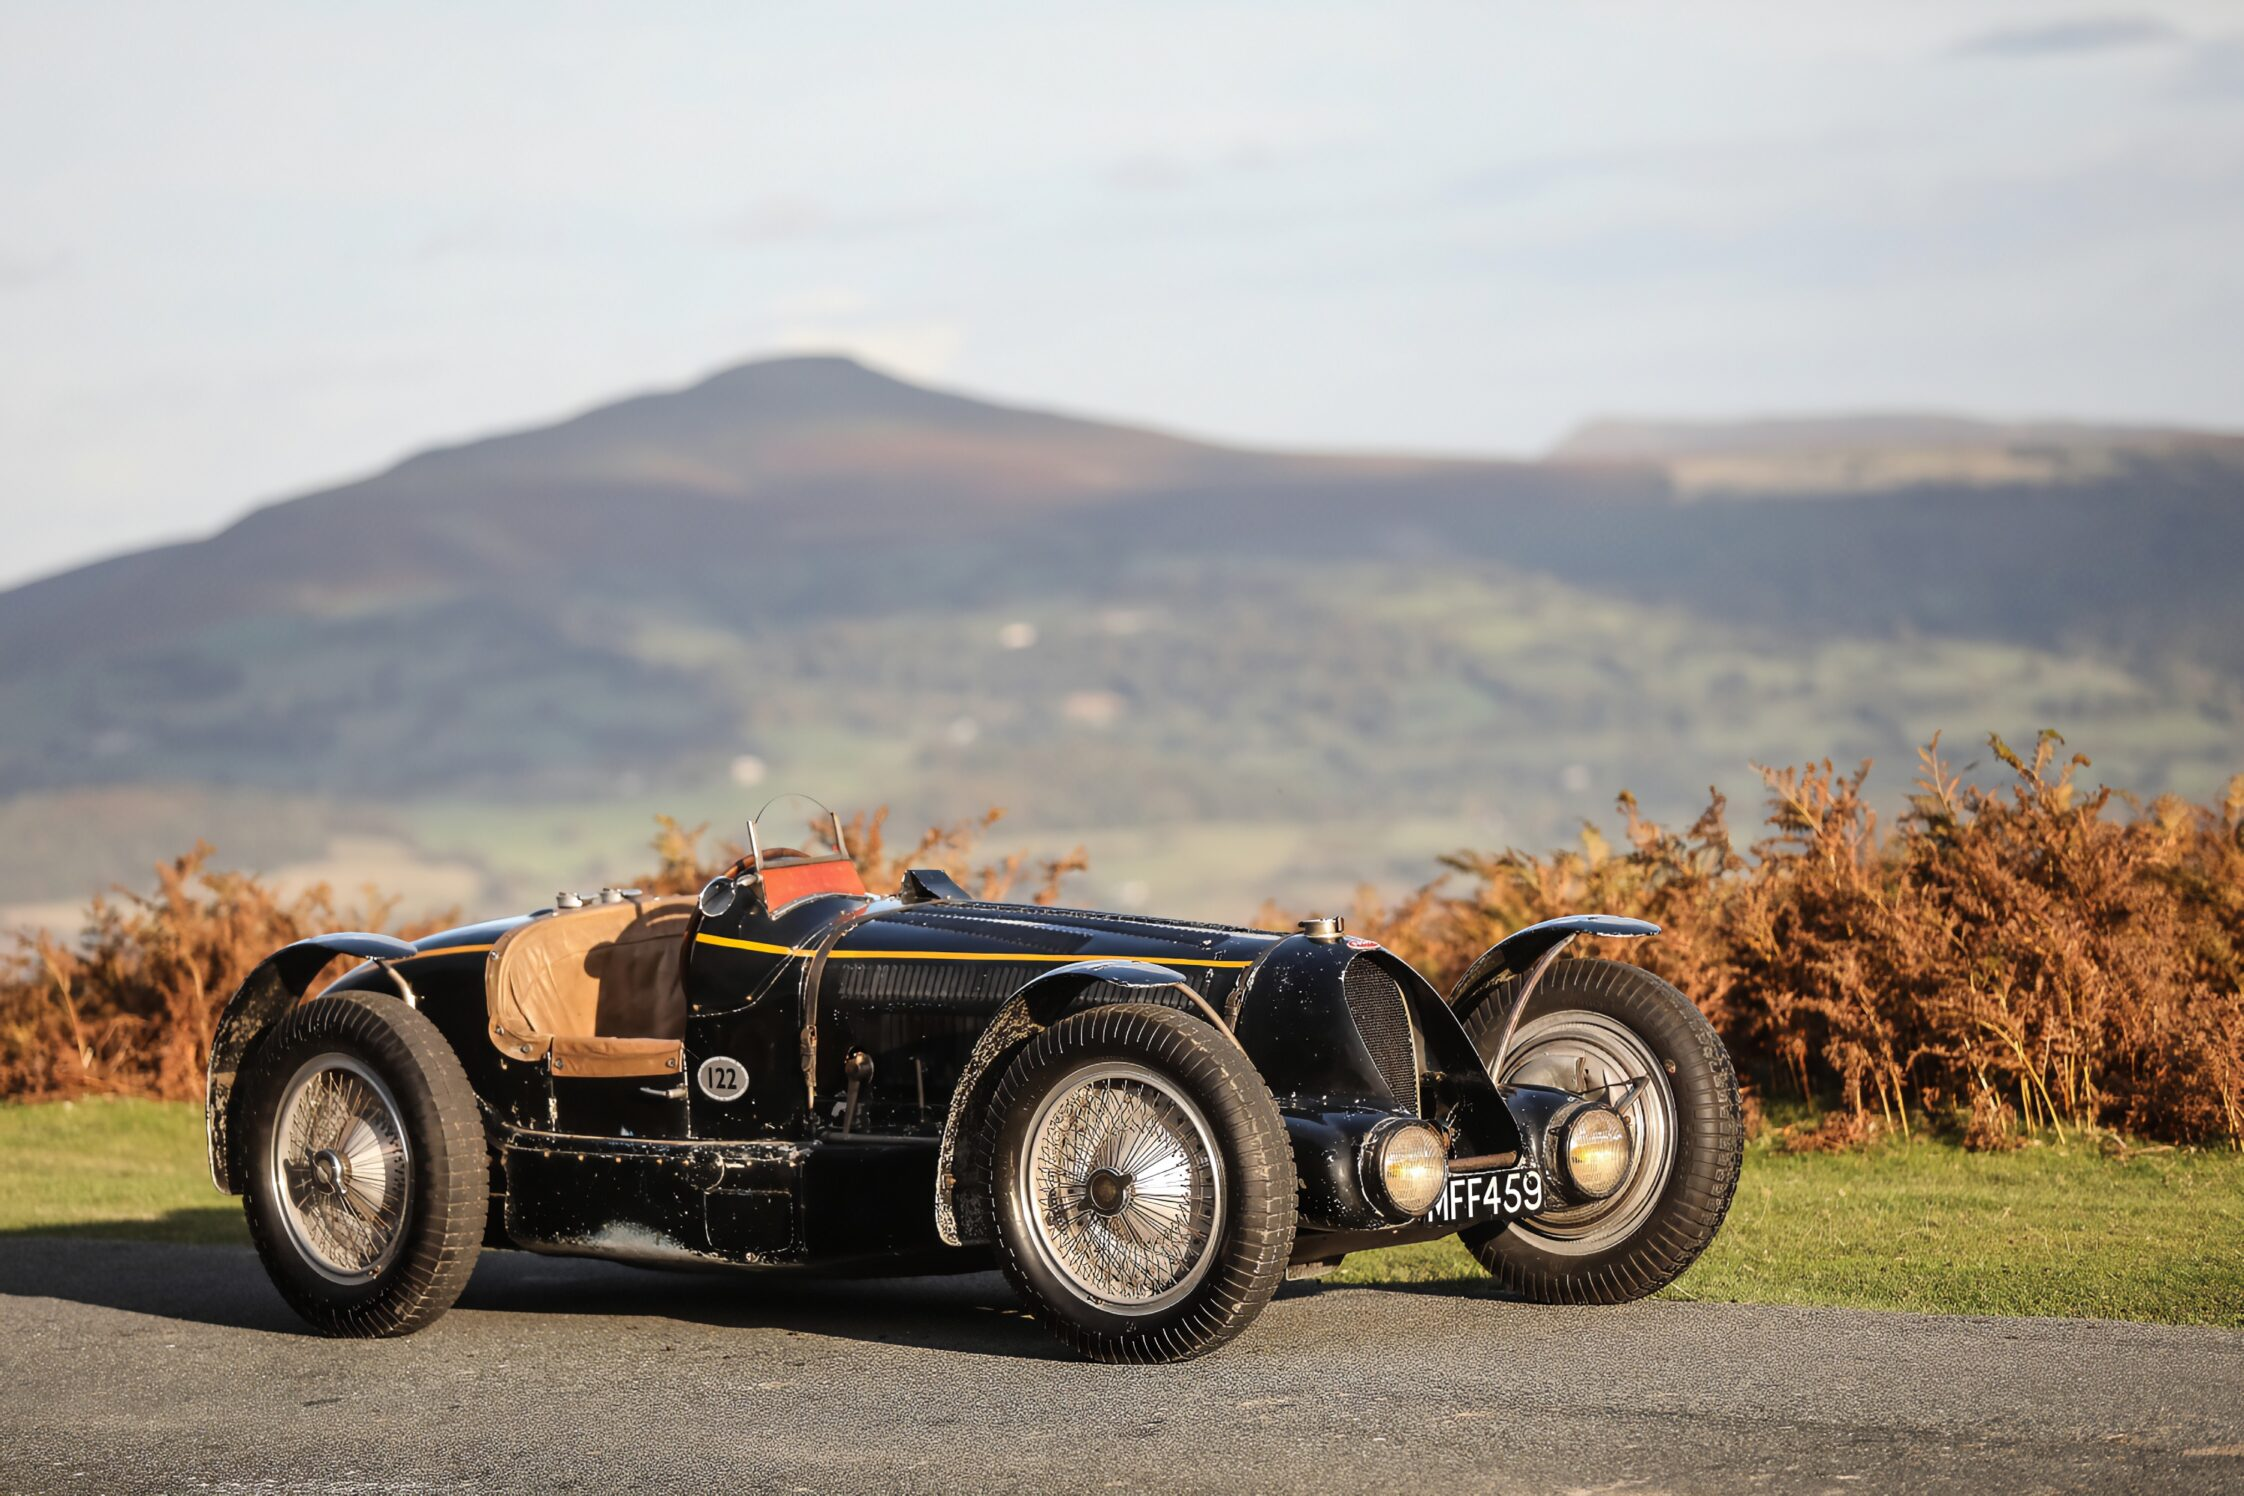 Gooding & Company Joins Concours of Elegance to Present the Auction of the Year